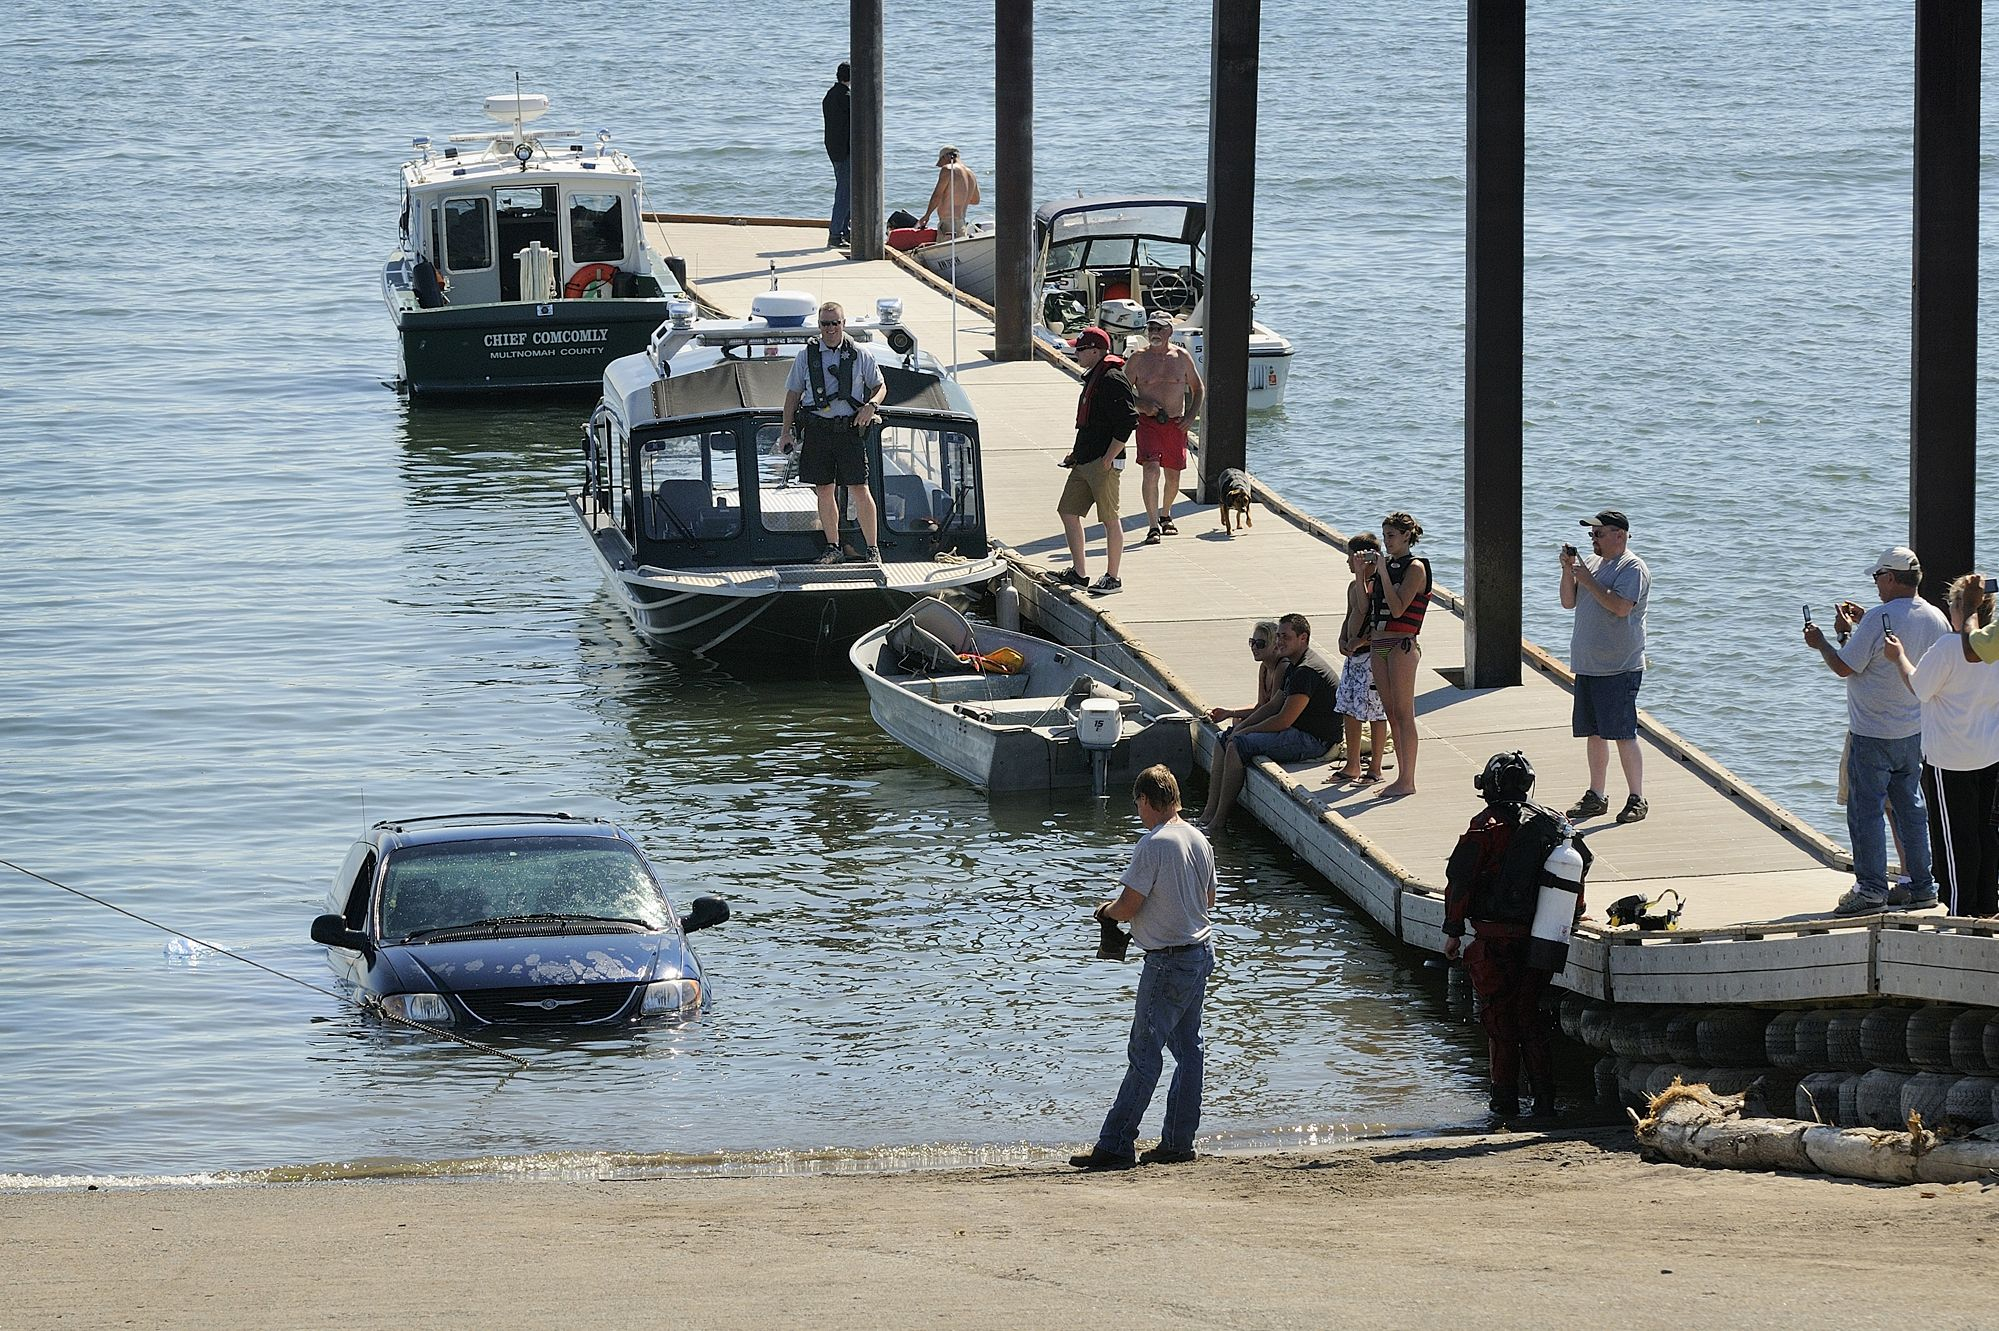 Robert Sharp's minivan is pulled from the Columbia River at the Marine Park boat launch Tuesday after his wife, Teresa, backed too far down the ramp while putting their boat in the water. No one was reported injured. (   TroyWayrynen   /TheColumbian). Be careful what you wish for Mike Jones!